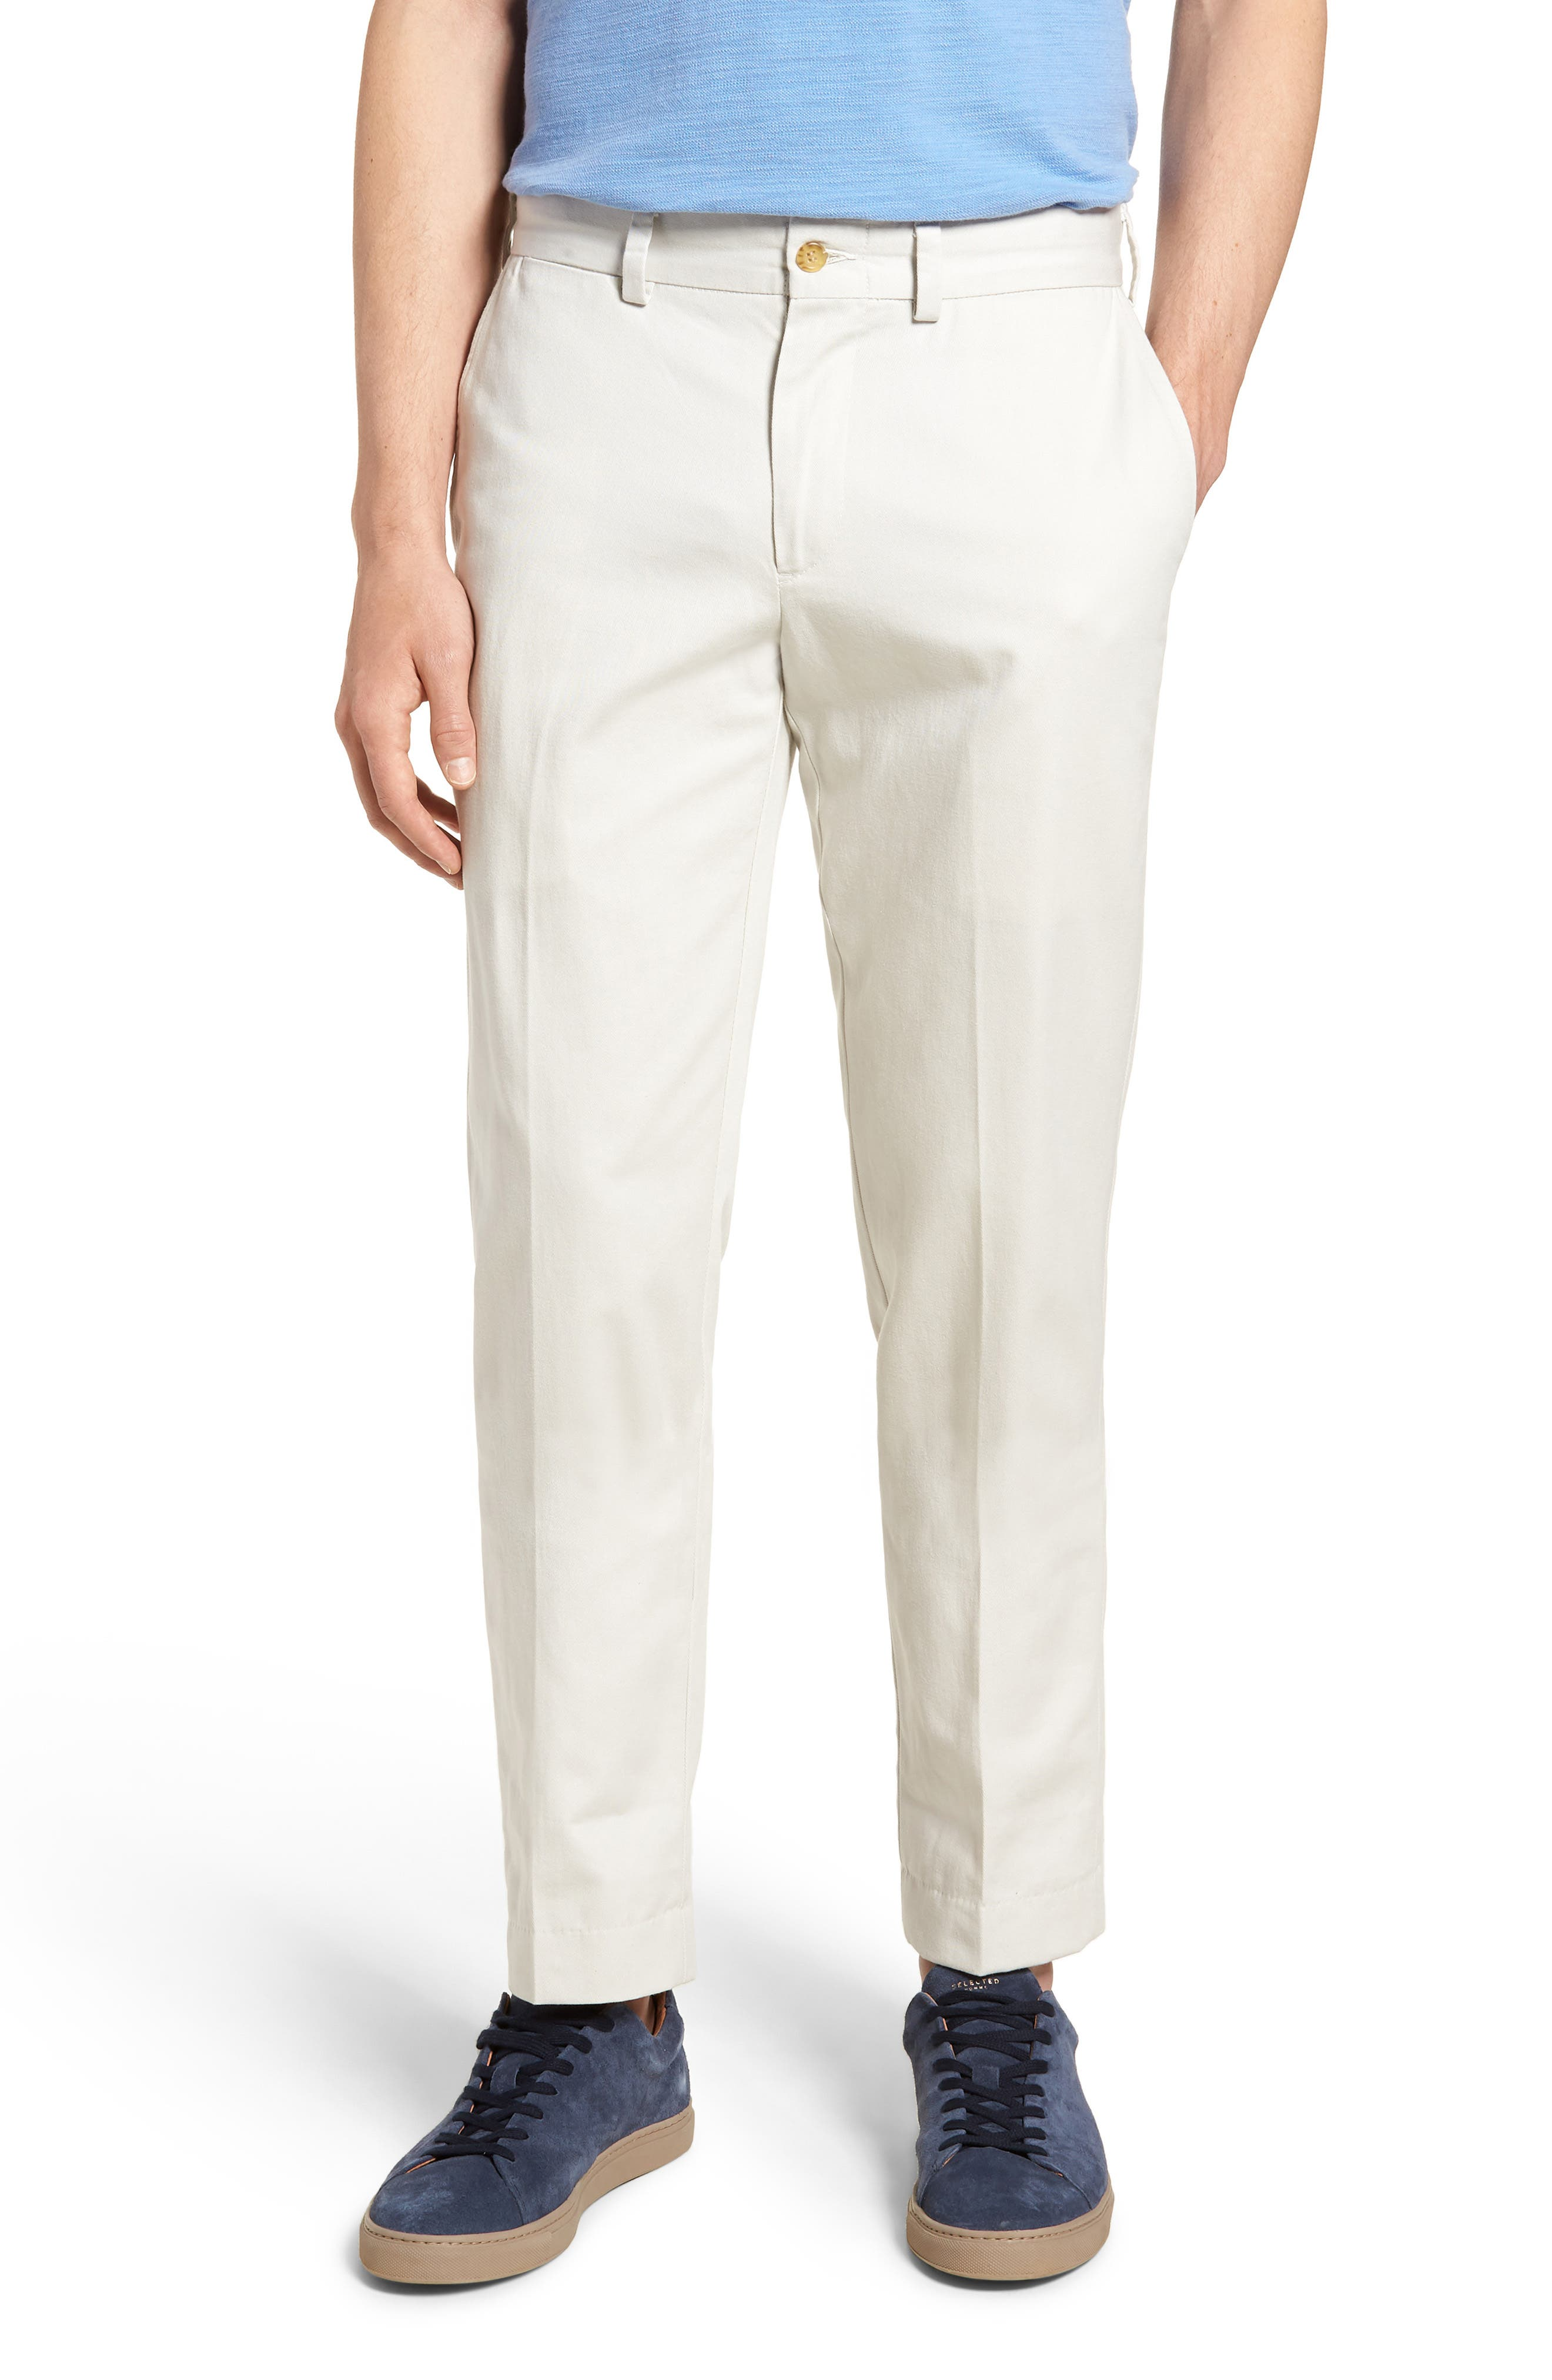 M3 Straight Fit Flat Front Vintage Twill Pants,                             Main thumbnail 1, color,                             Stone